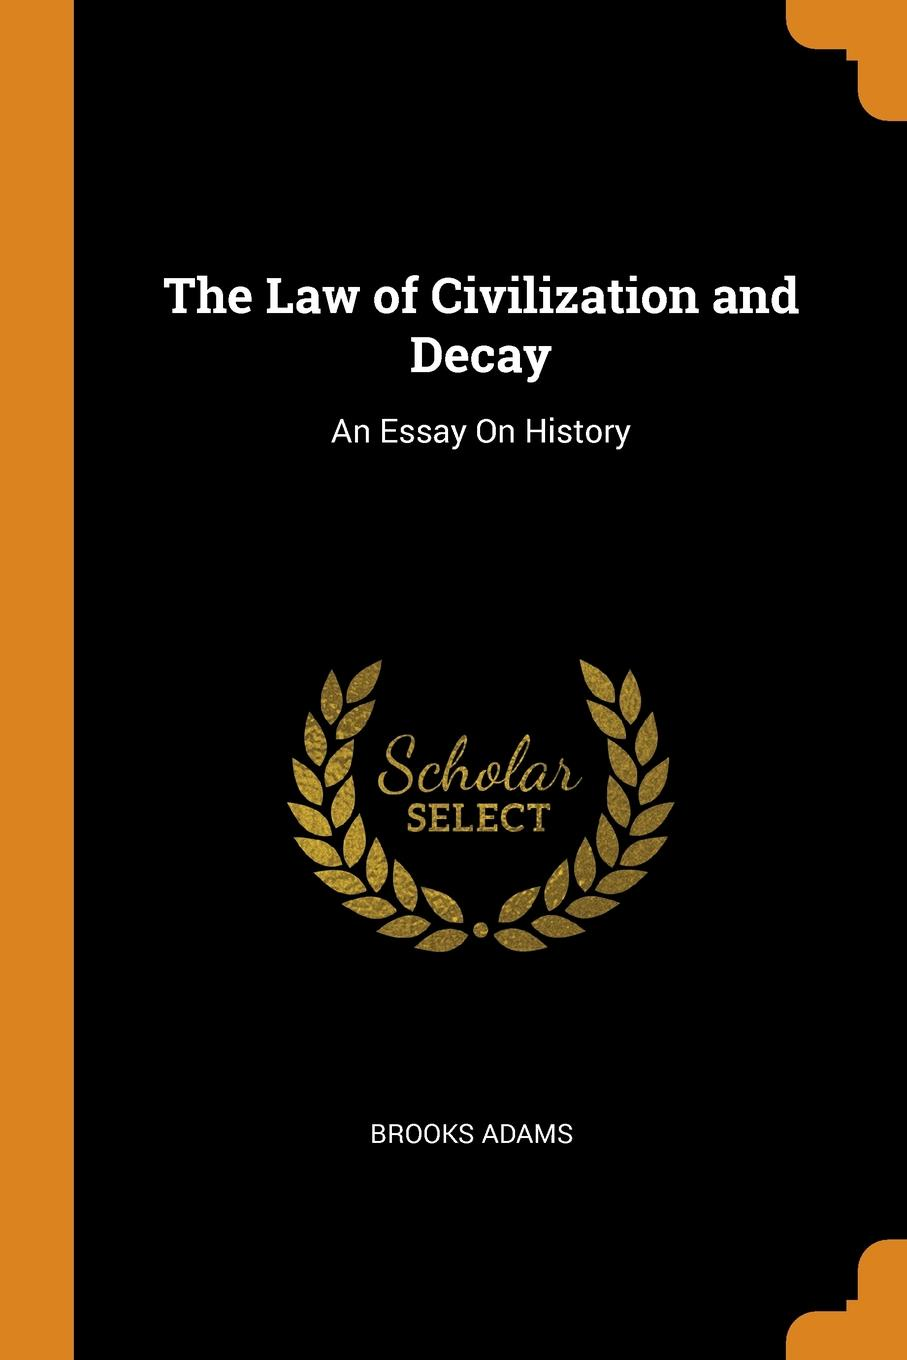 Brooks Adams The Law of Civilization and Decay. An Essay On History adams brooks the law of civilization and decay